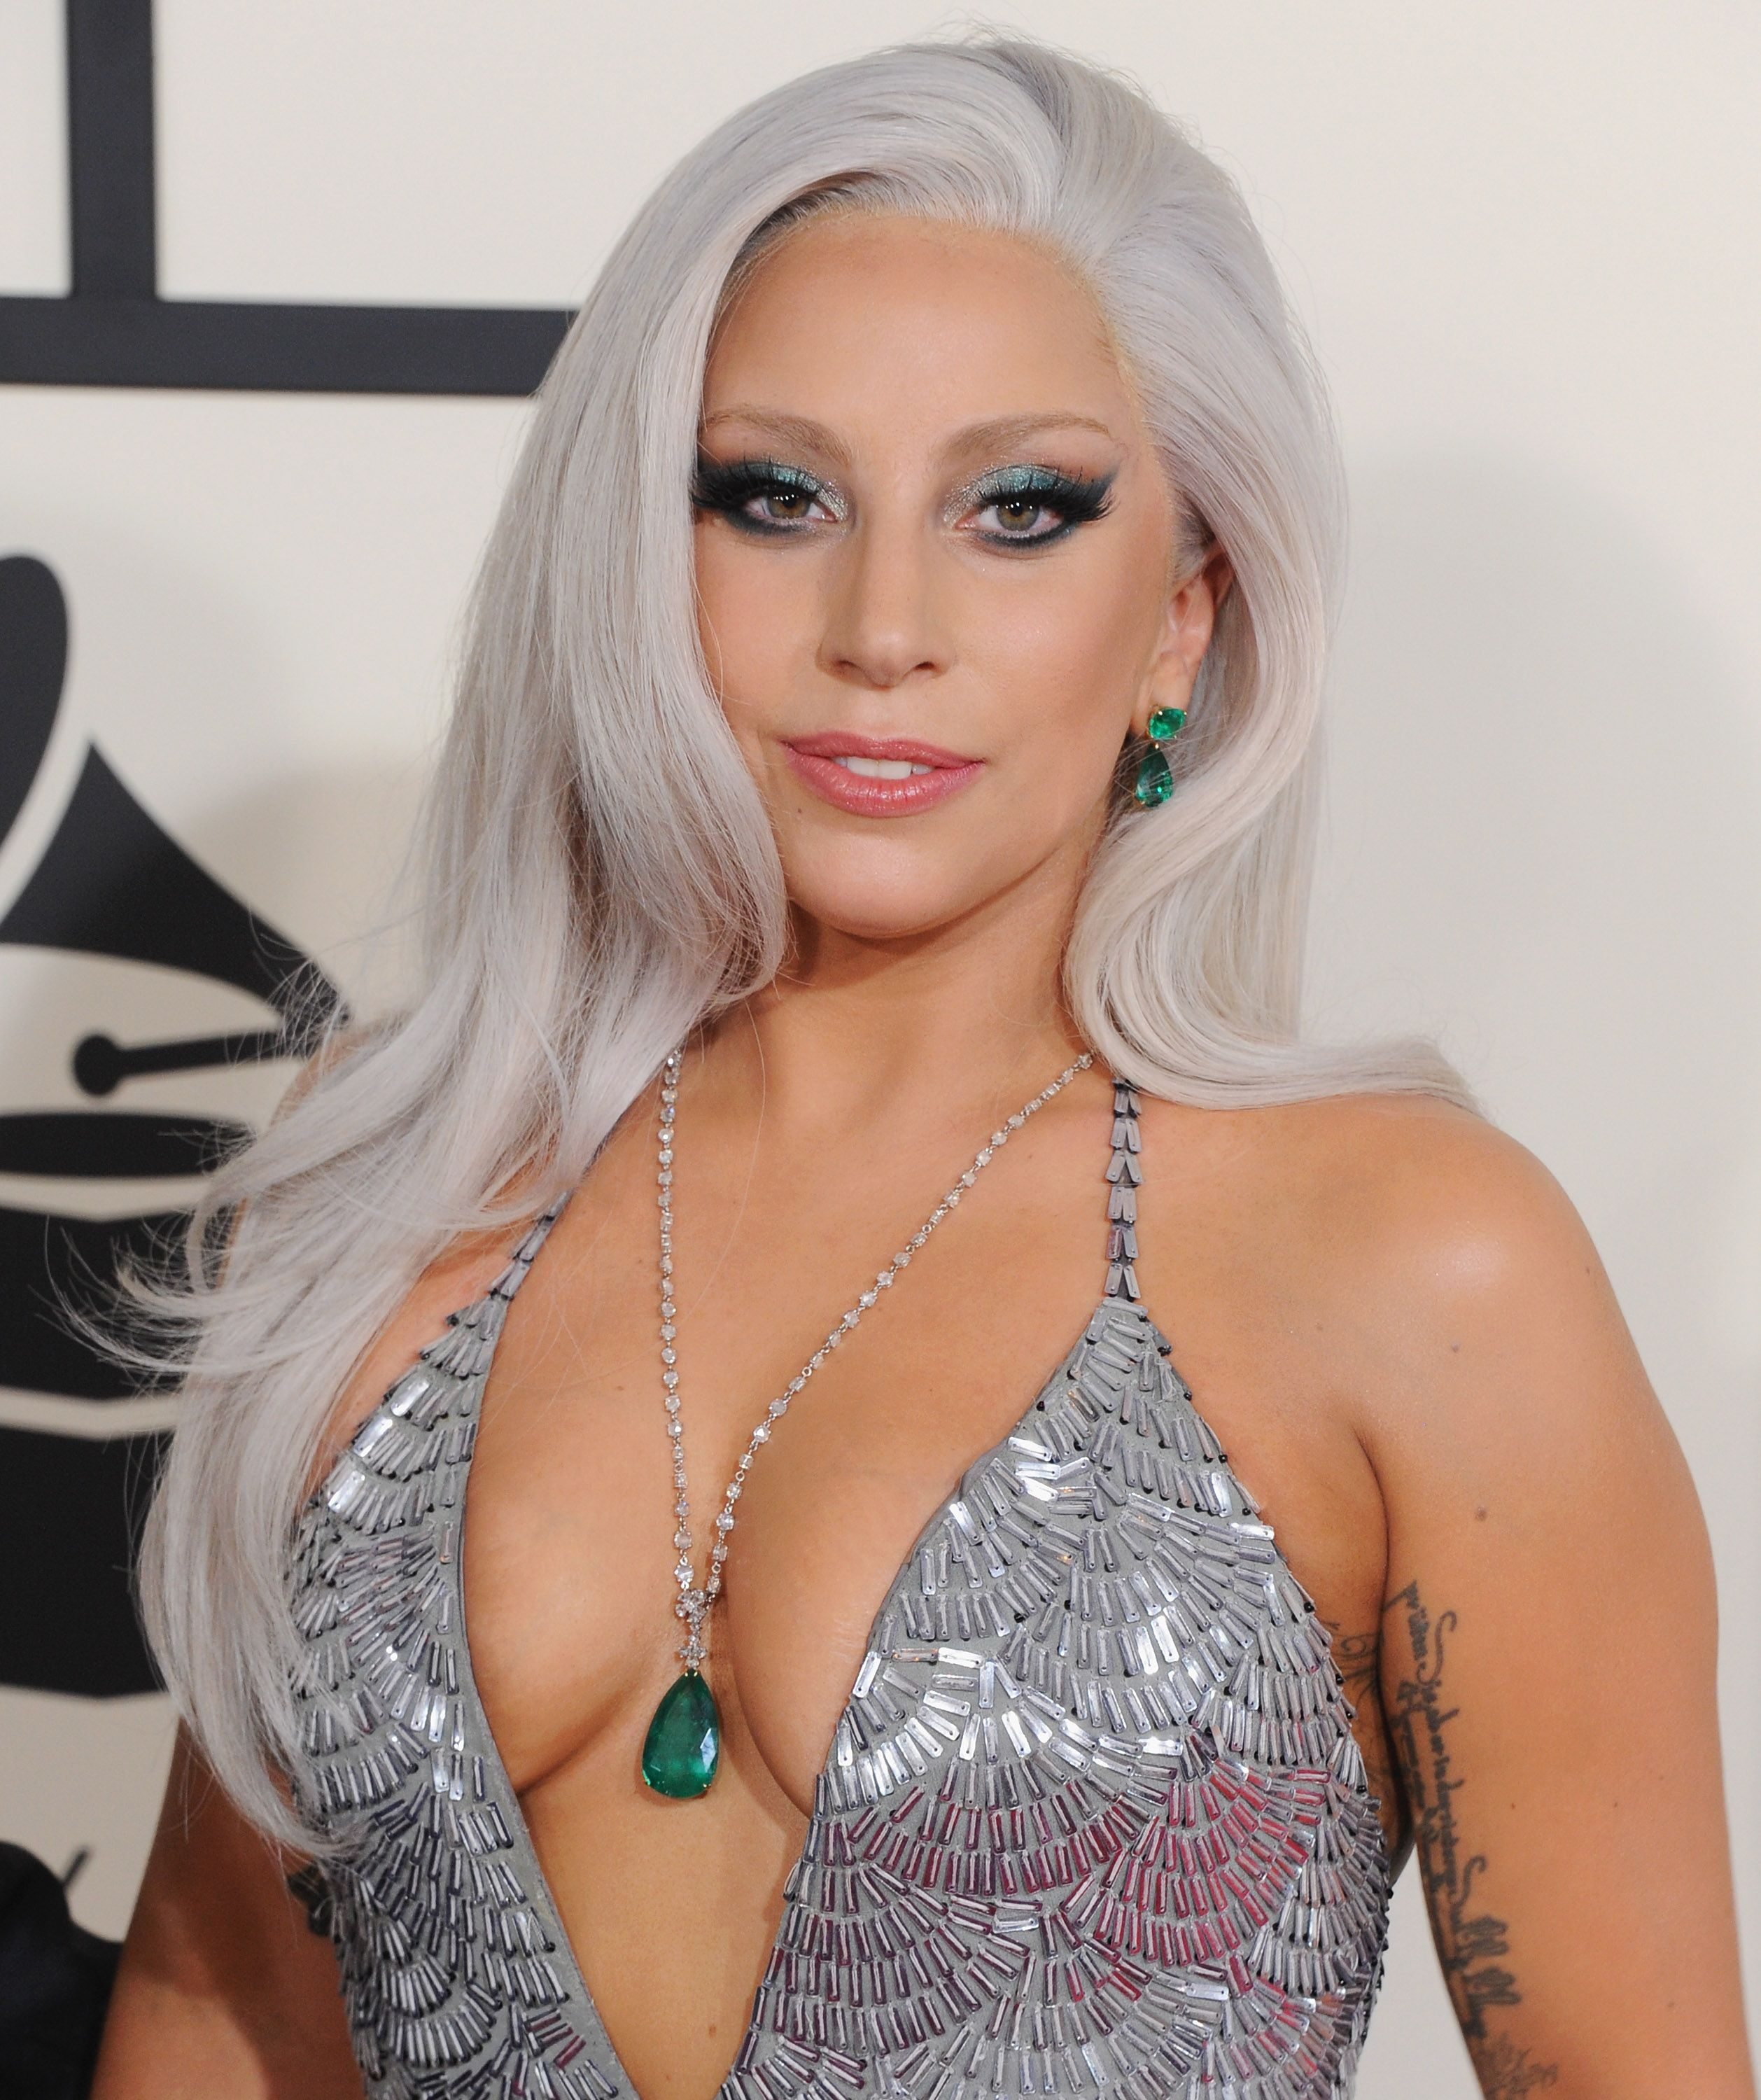 lady-gaga-gray-silver-hair-2.jpg